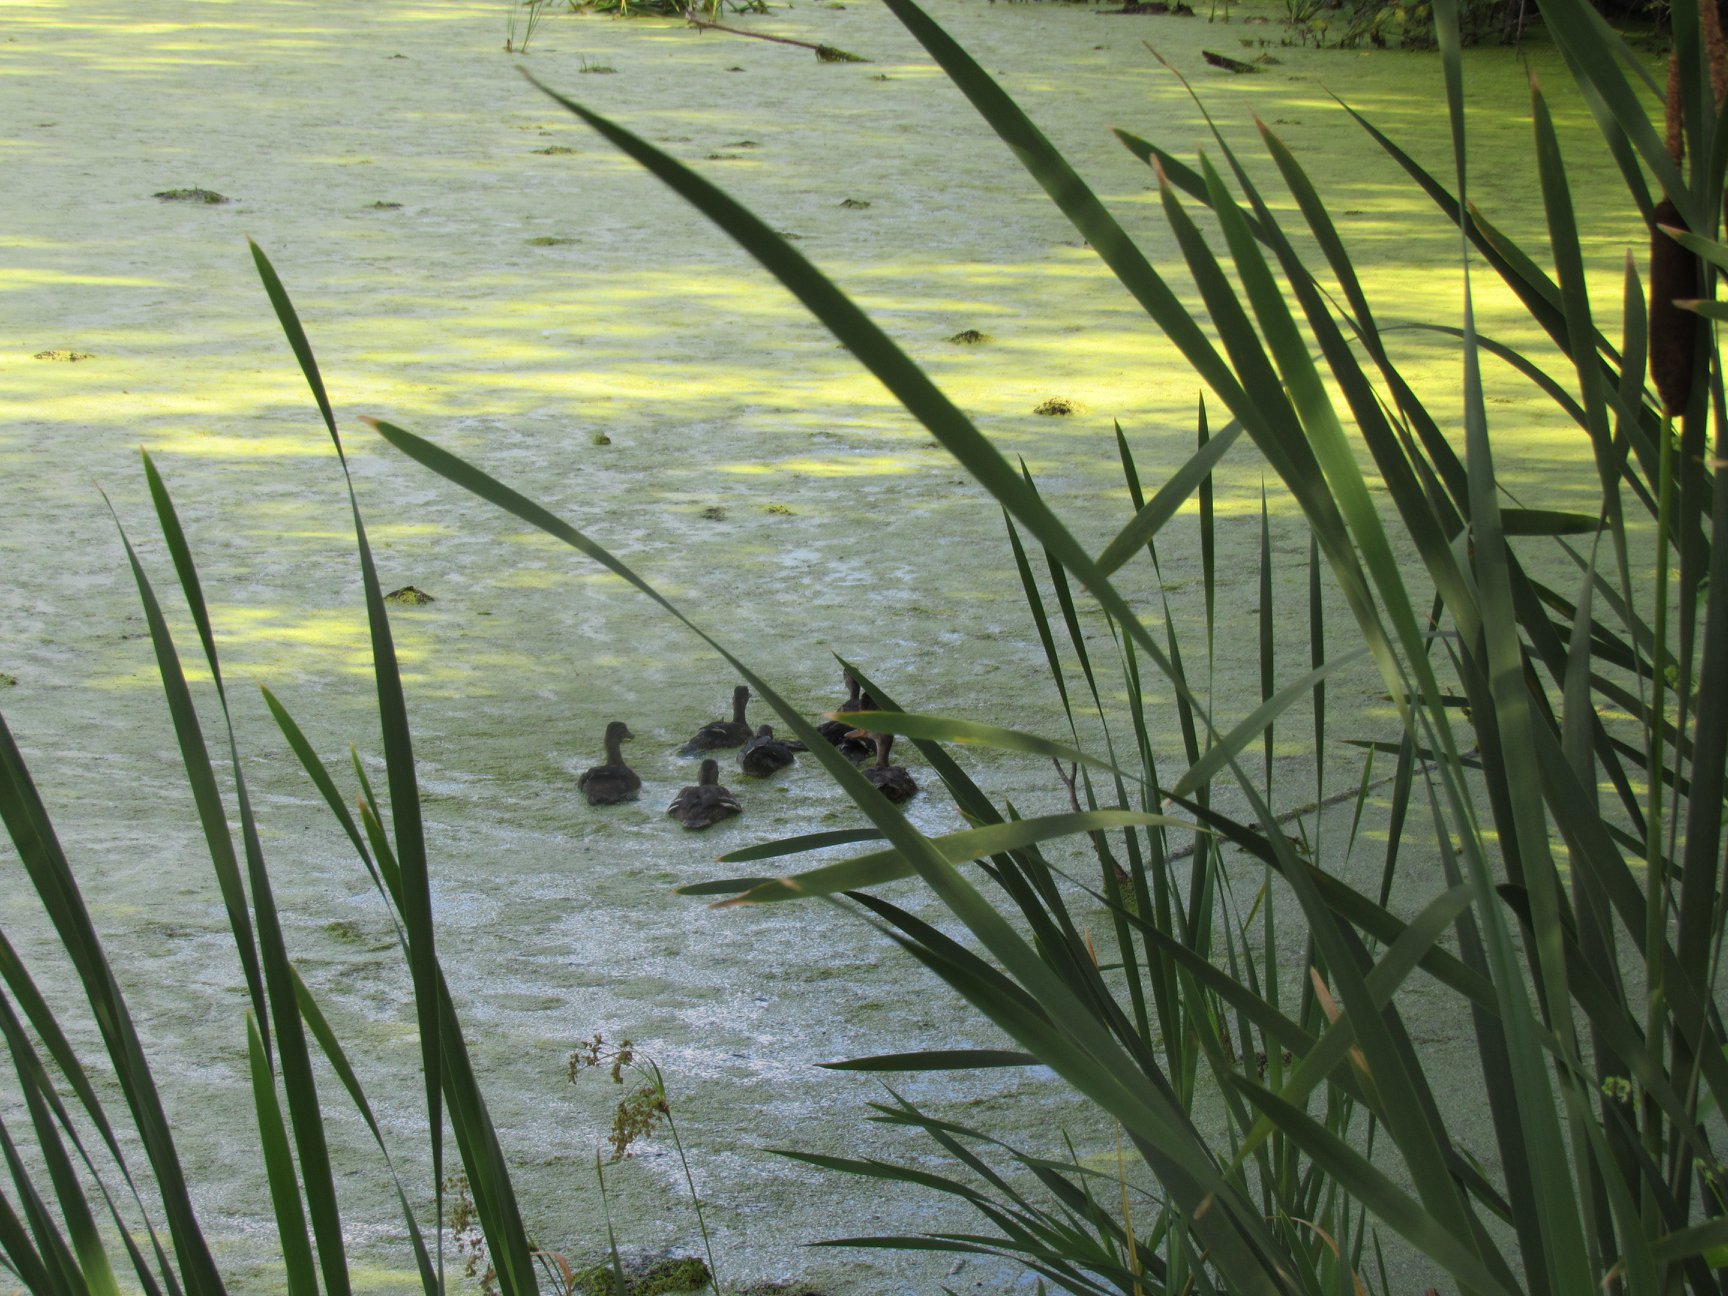 On their way to the rest of their life! They are always very excited about the great duck weed in this remote location. Also inaccessible to humans which is a plus.